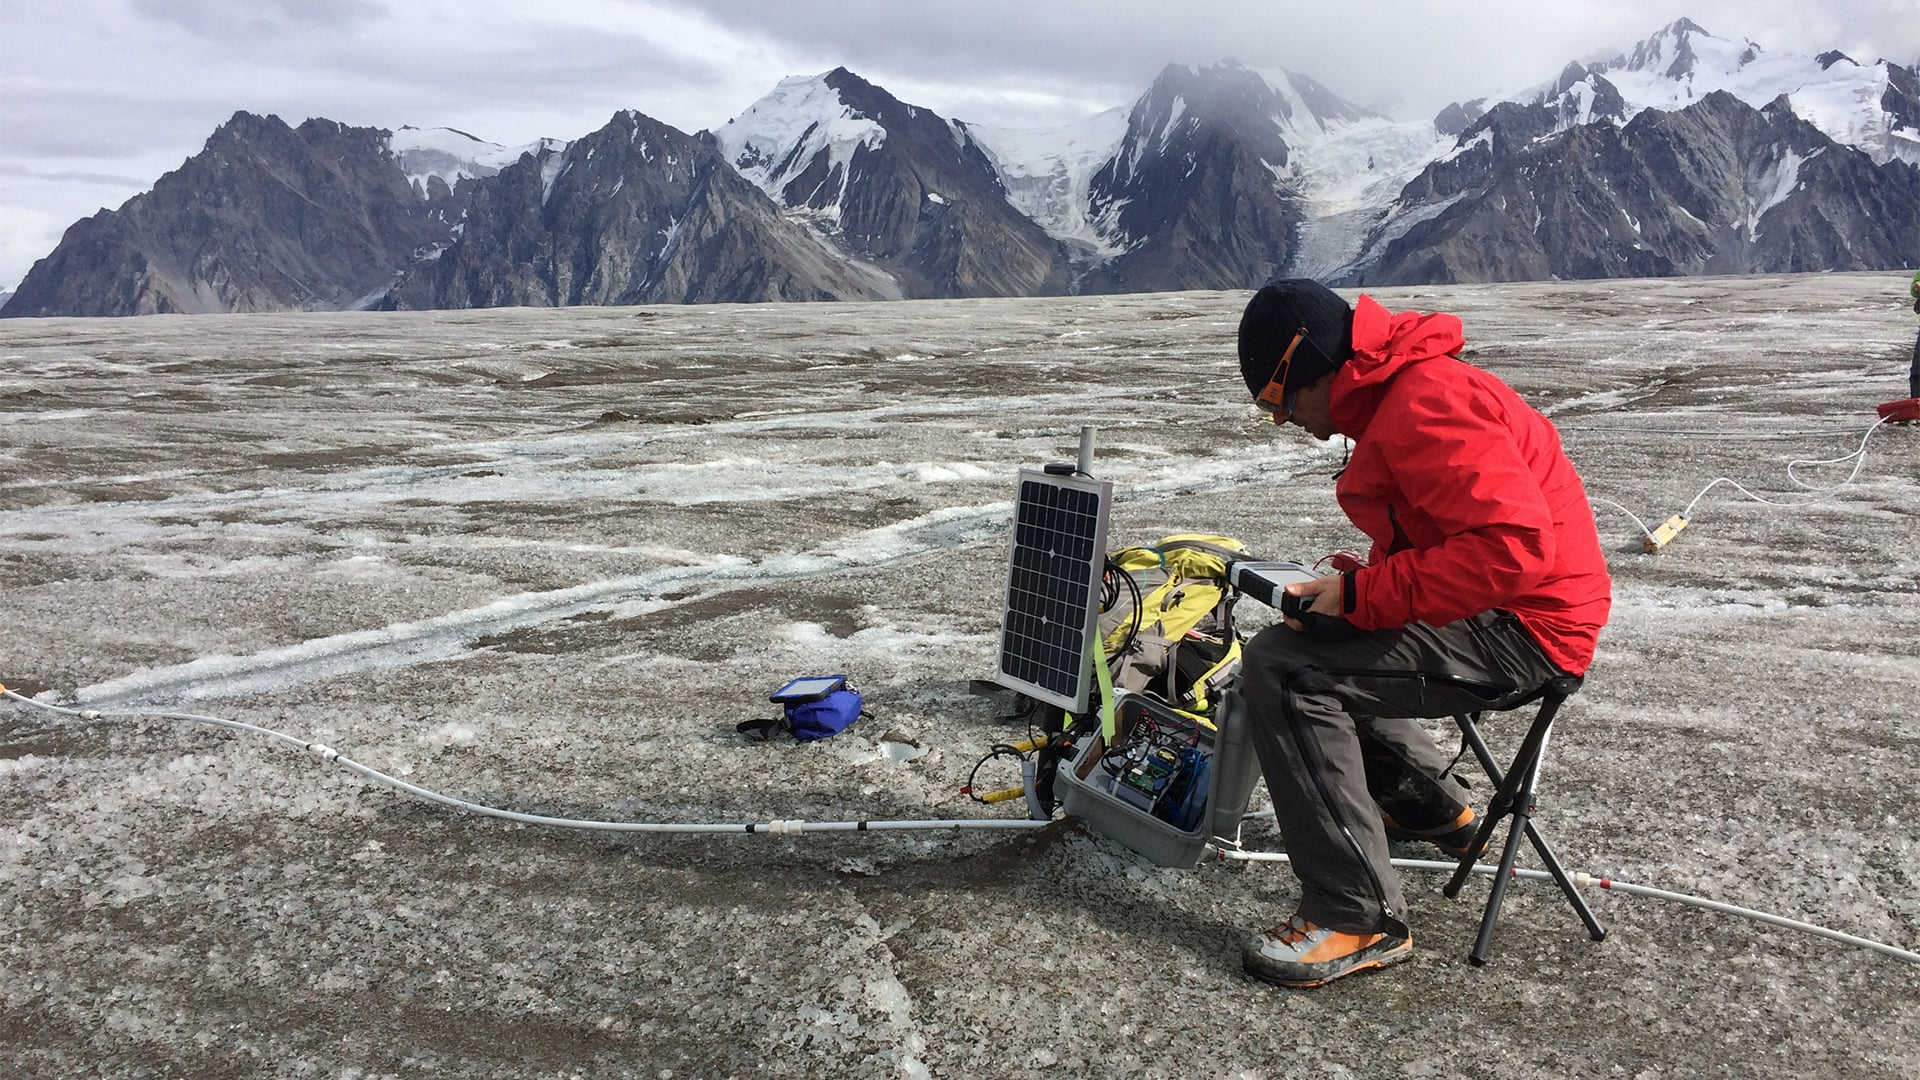 glacier researchers using algiz rugged tablet